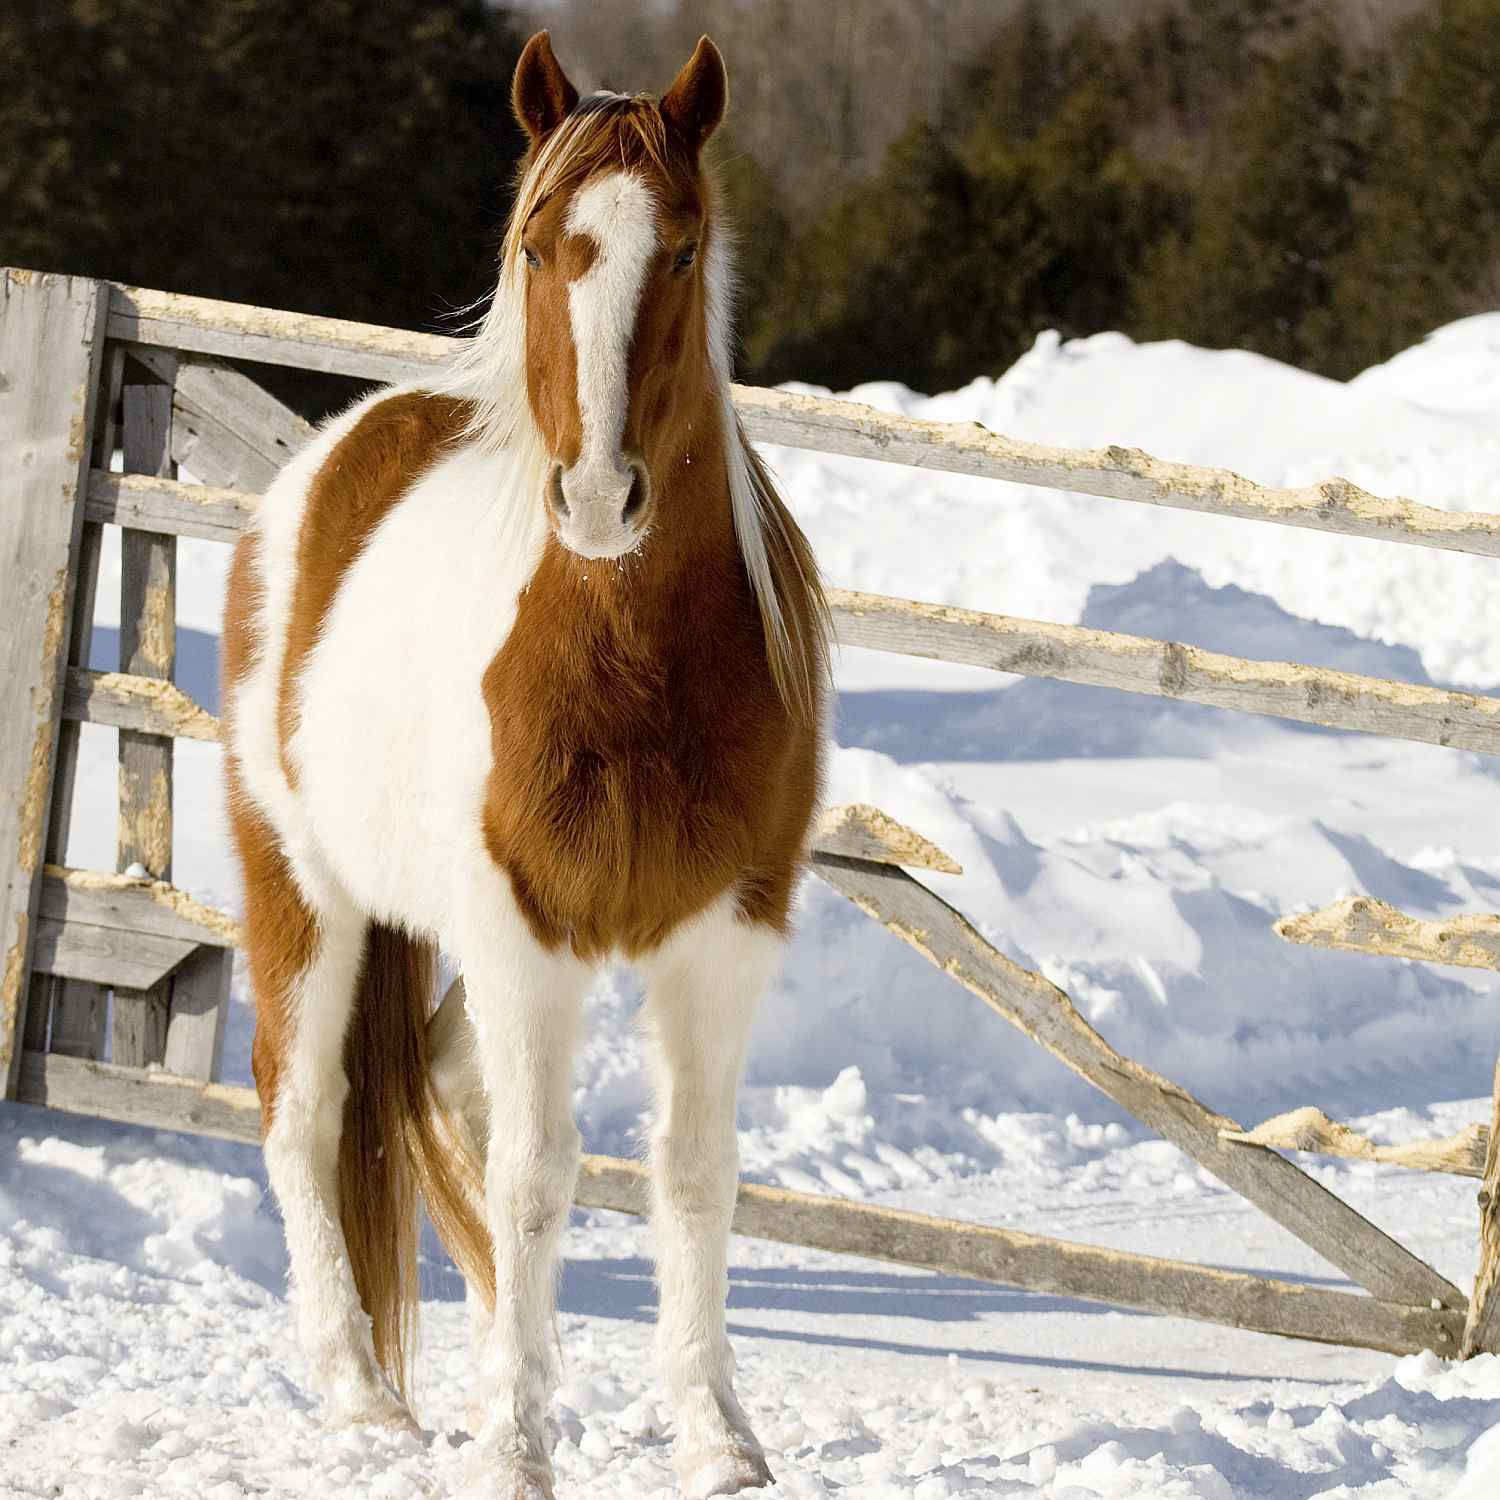 Horse standing in snow by gate.